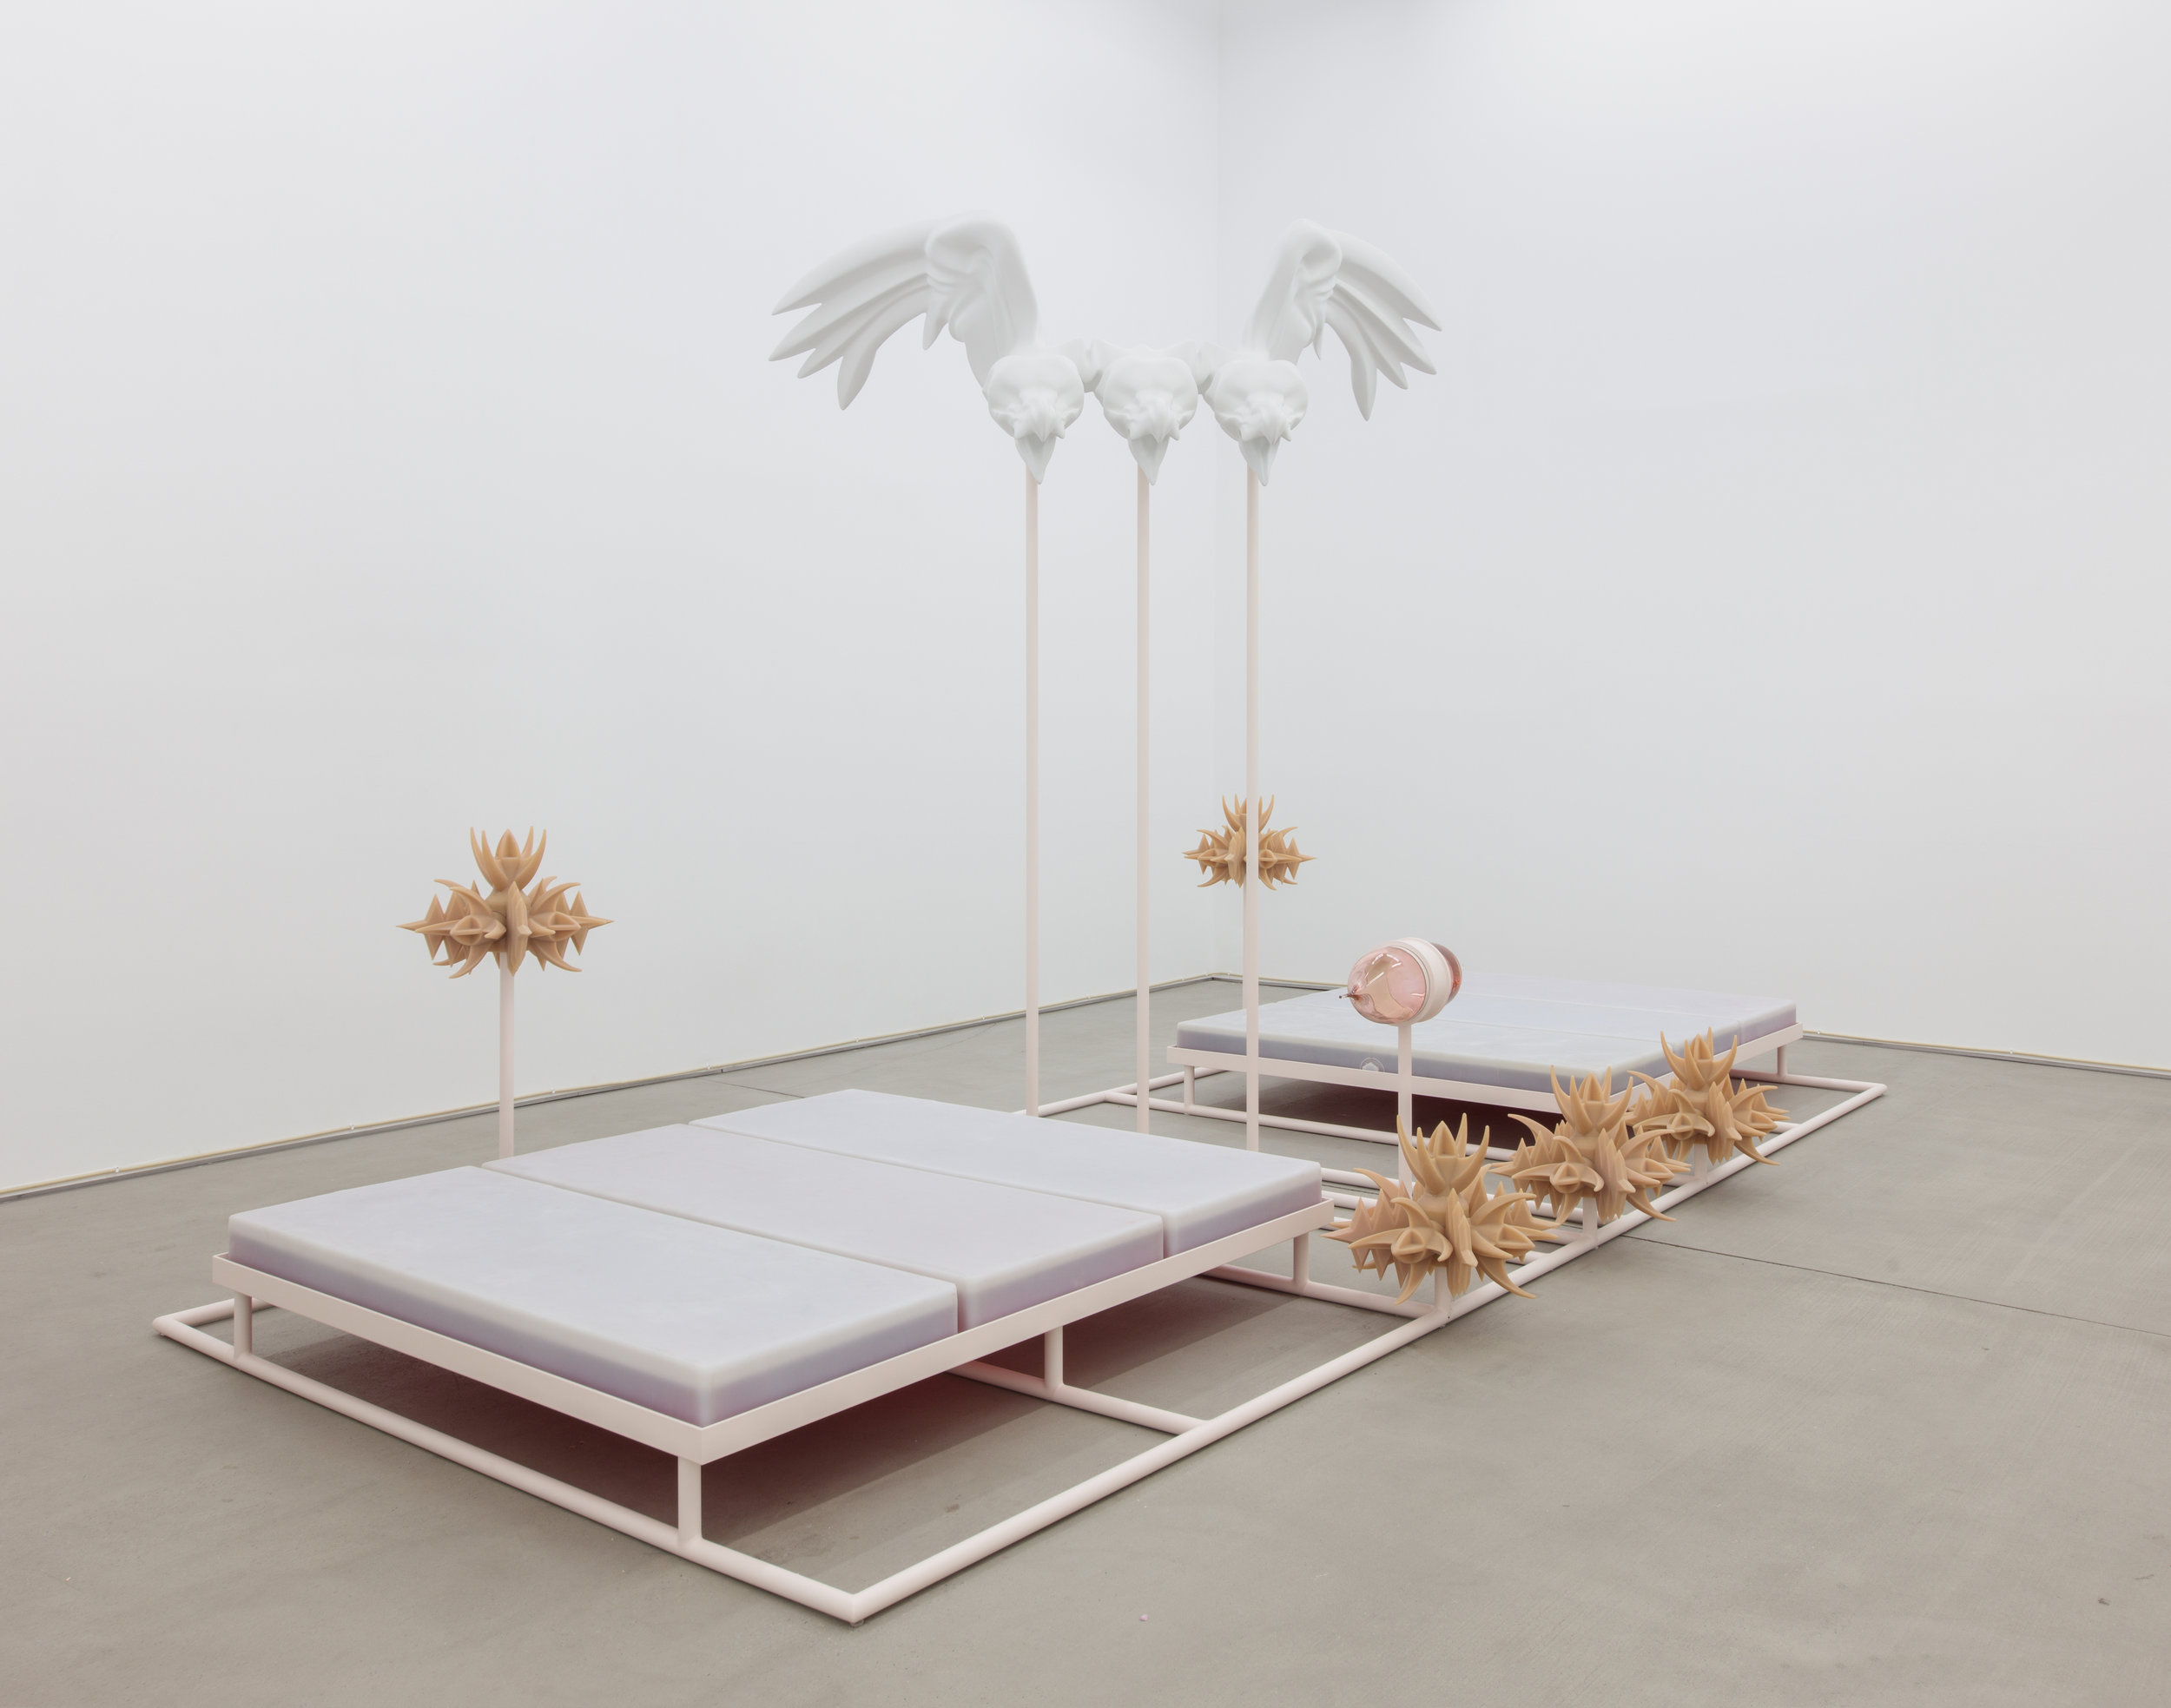 Marguerite Humeau.HARRY II (BODY), 2017.Polystyrene, resin, fibreglass, white paint, acrylic parts, sprayed metal stand, water tanks, *raptors* – sourced on an anti-climbing security systems website – cast in artificial human skin, rubber, glass artificial blood-sucking organ, artificial human blood, sound.Stan Narten, JSP Photography.Courtesy the artist and C L E A R I N G New York / Brussels